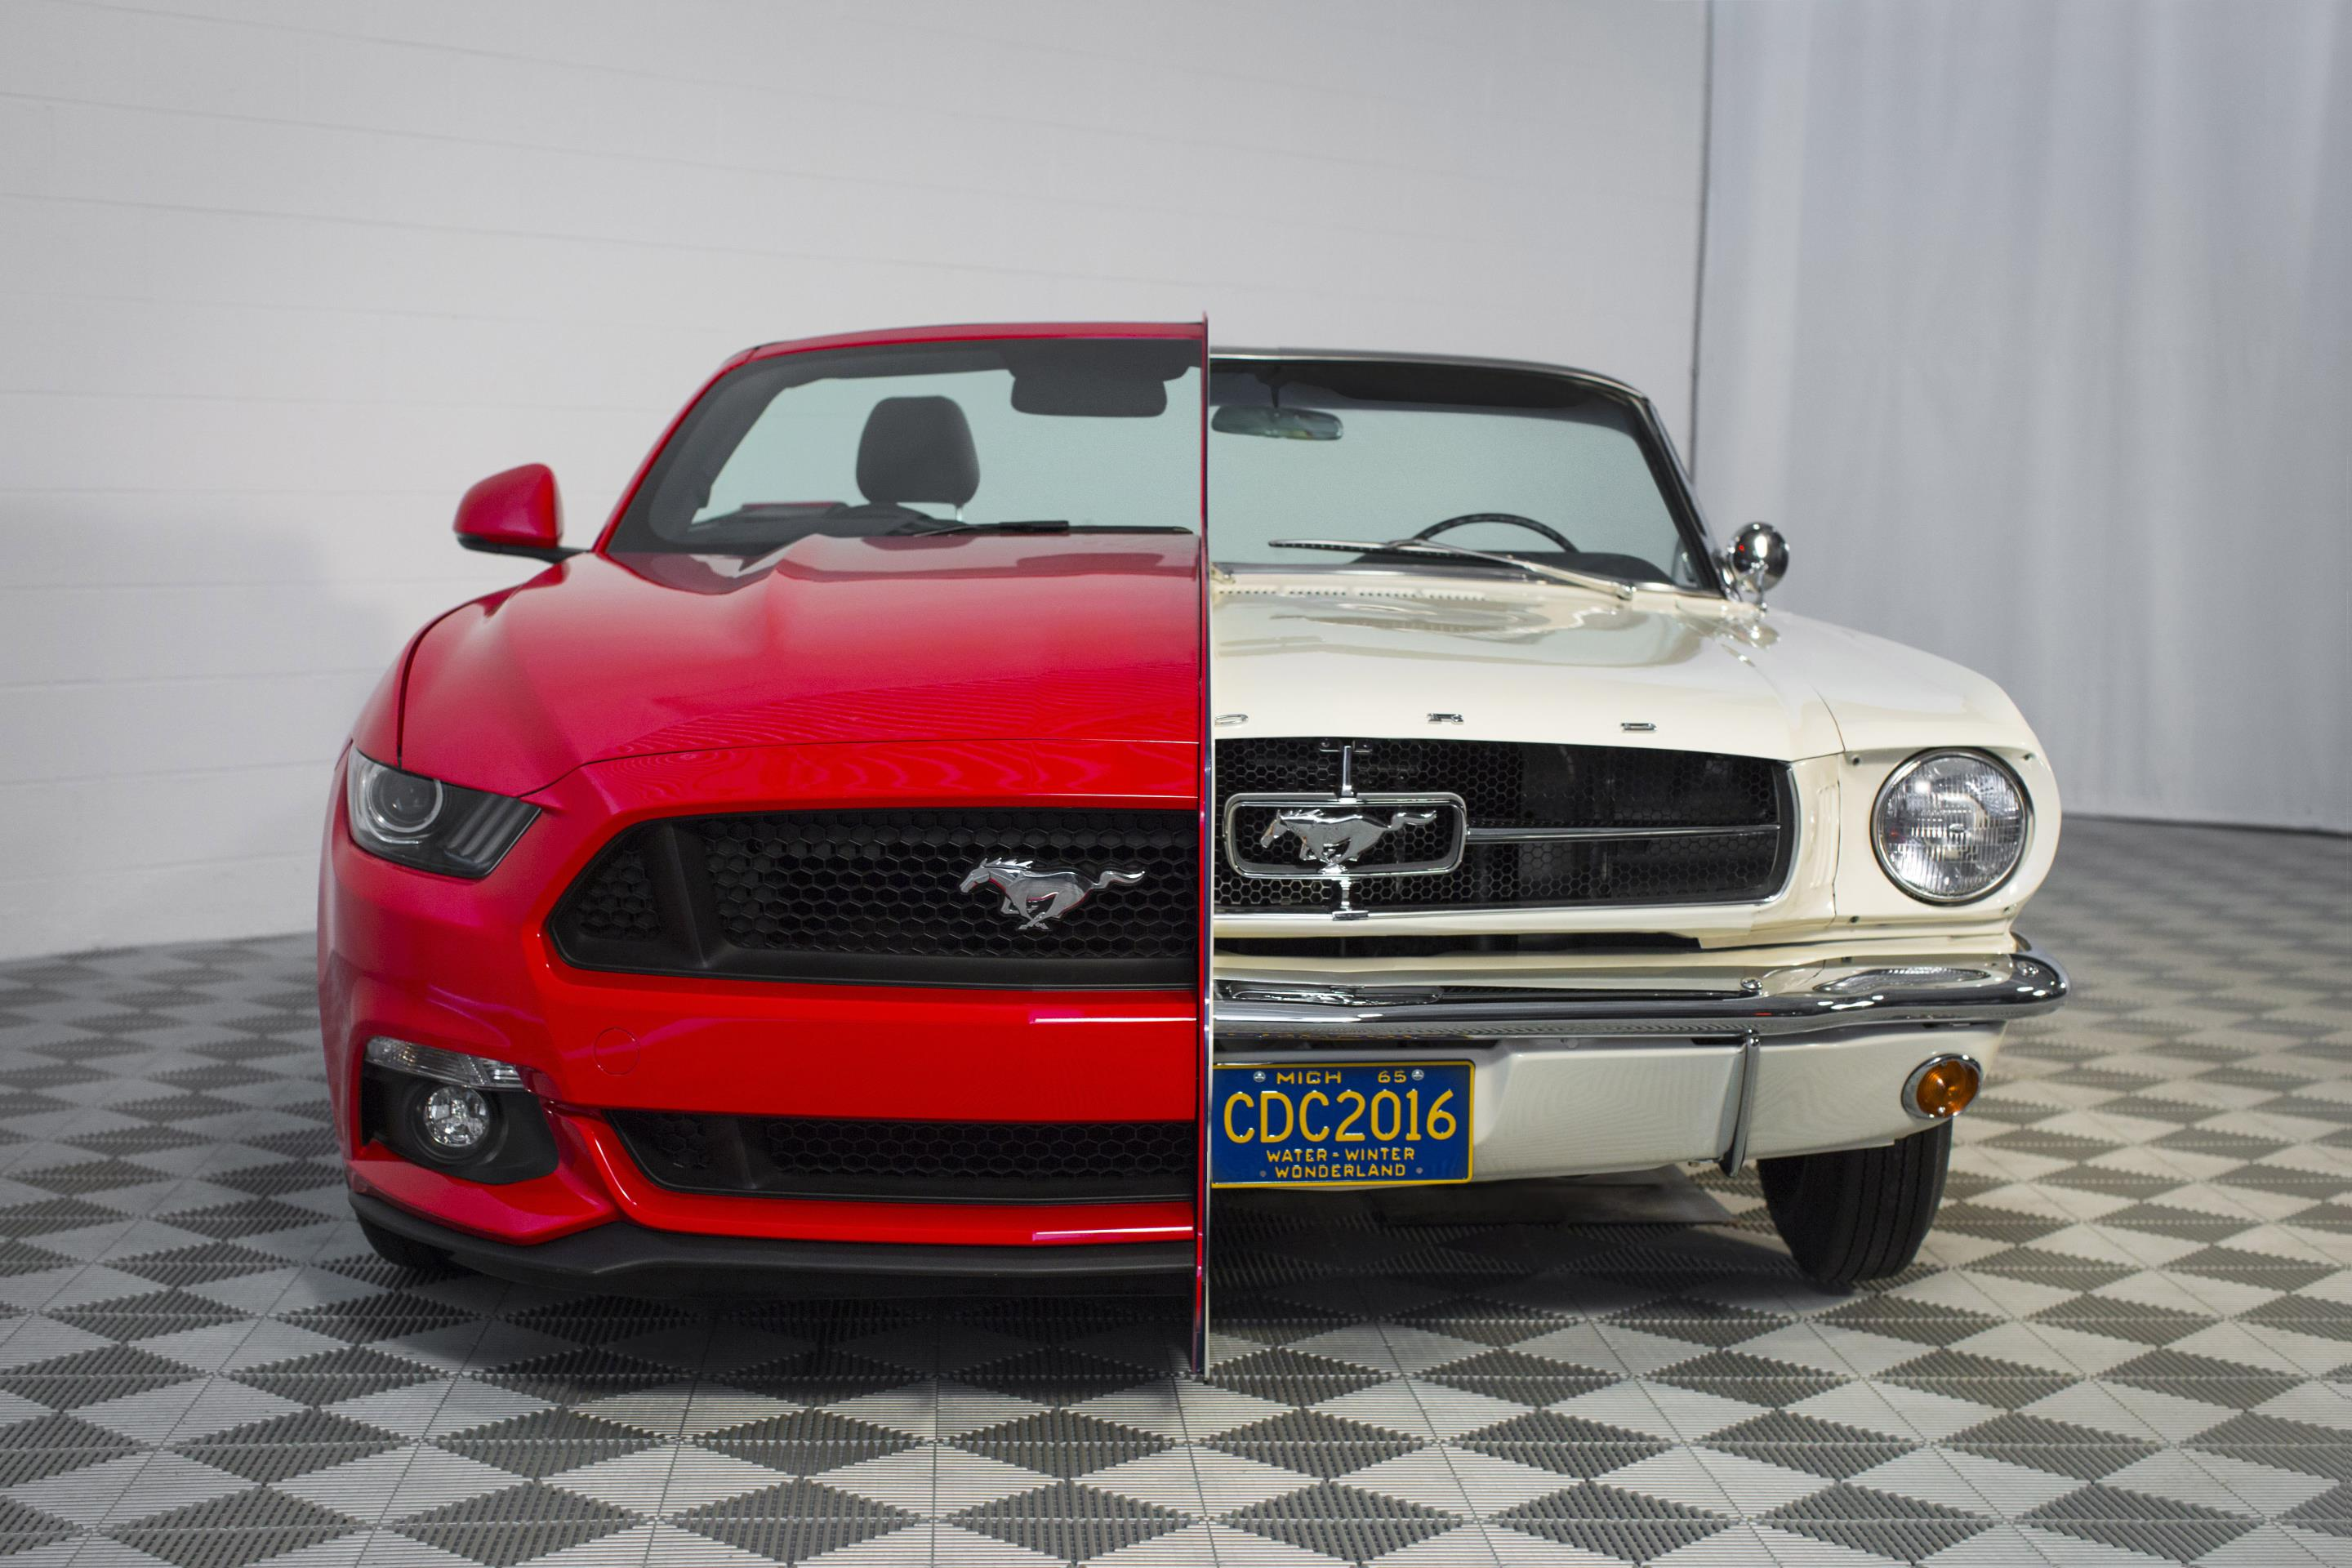 Mustang Vs Camaro >> 1965 Mustang Conjoined with 2015 Mustang for Art's Sake - autoevolution